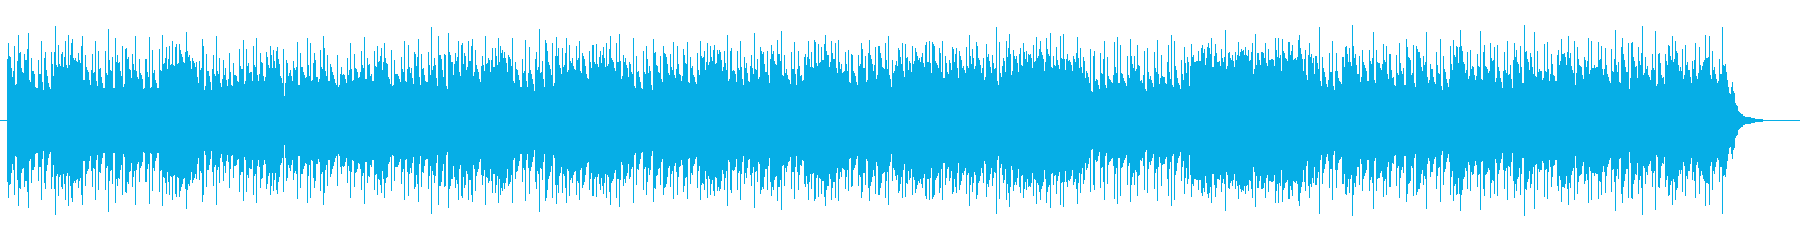 Minor, space-like synth BGM sound's reproduced waveform